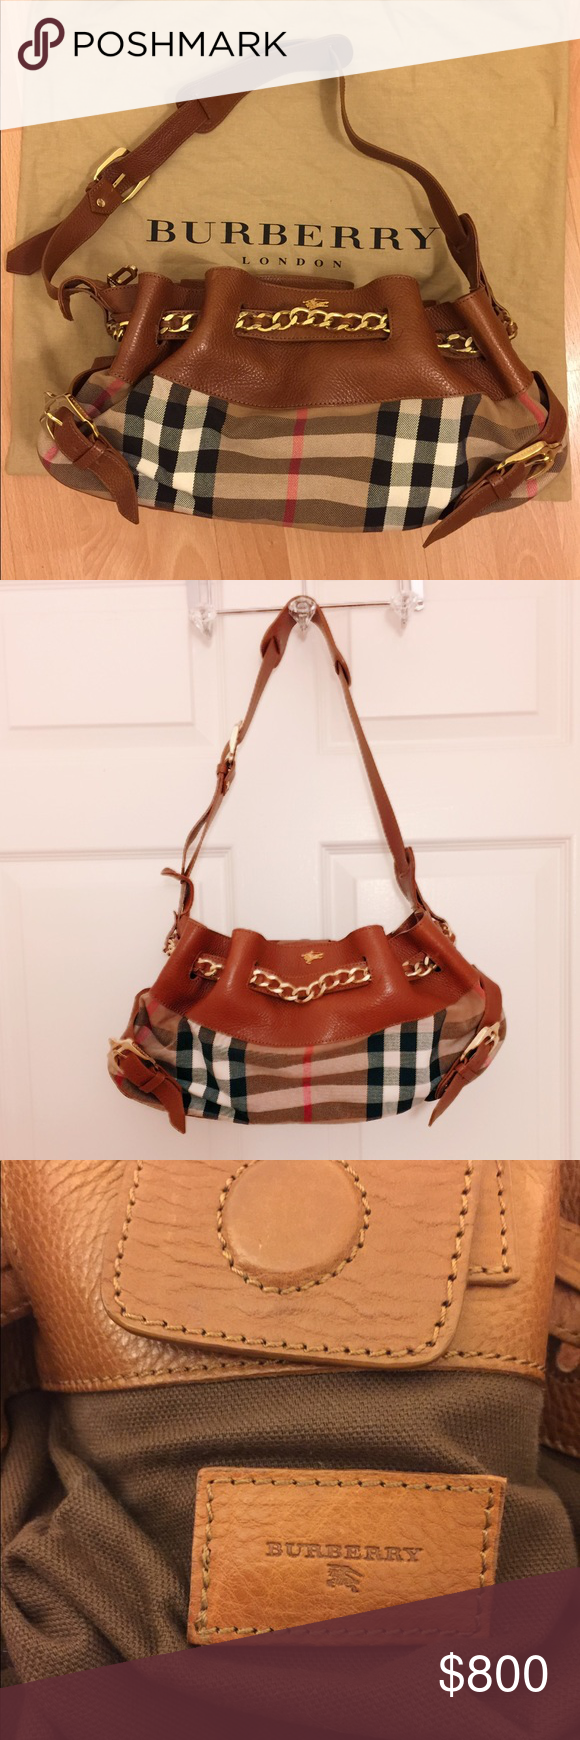 ⭐️Clearance Burberry Margaret Leather+Canvas Bag  2fa4cfaf8adf3